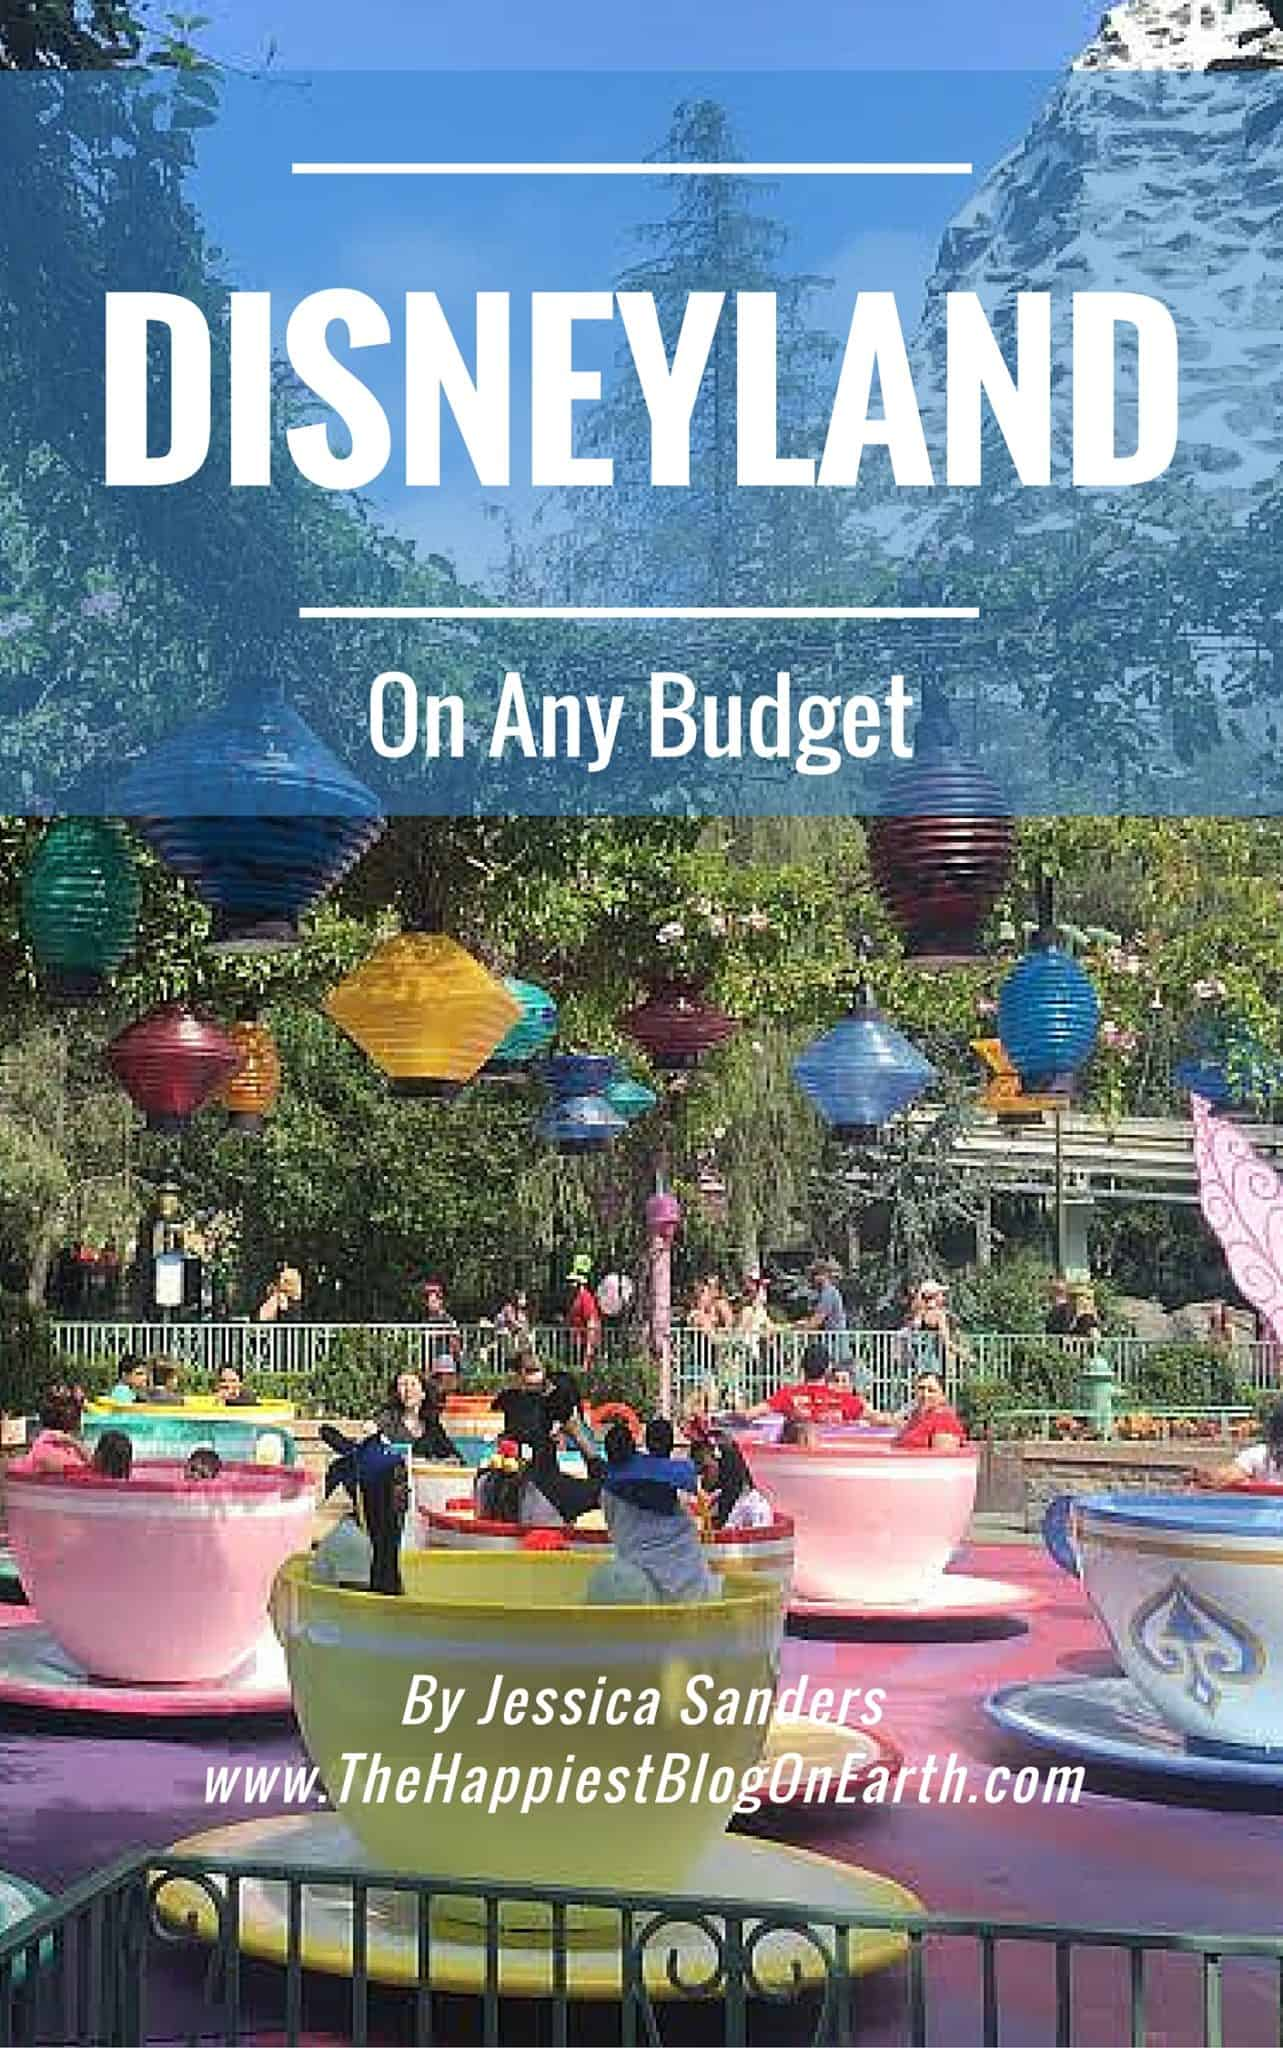 Disneyland On Any Budget, start saving and let's go to Disneyland!